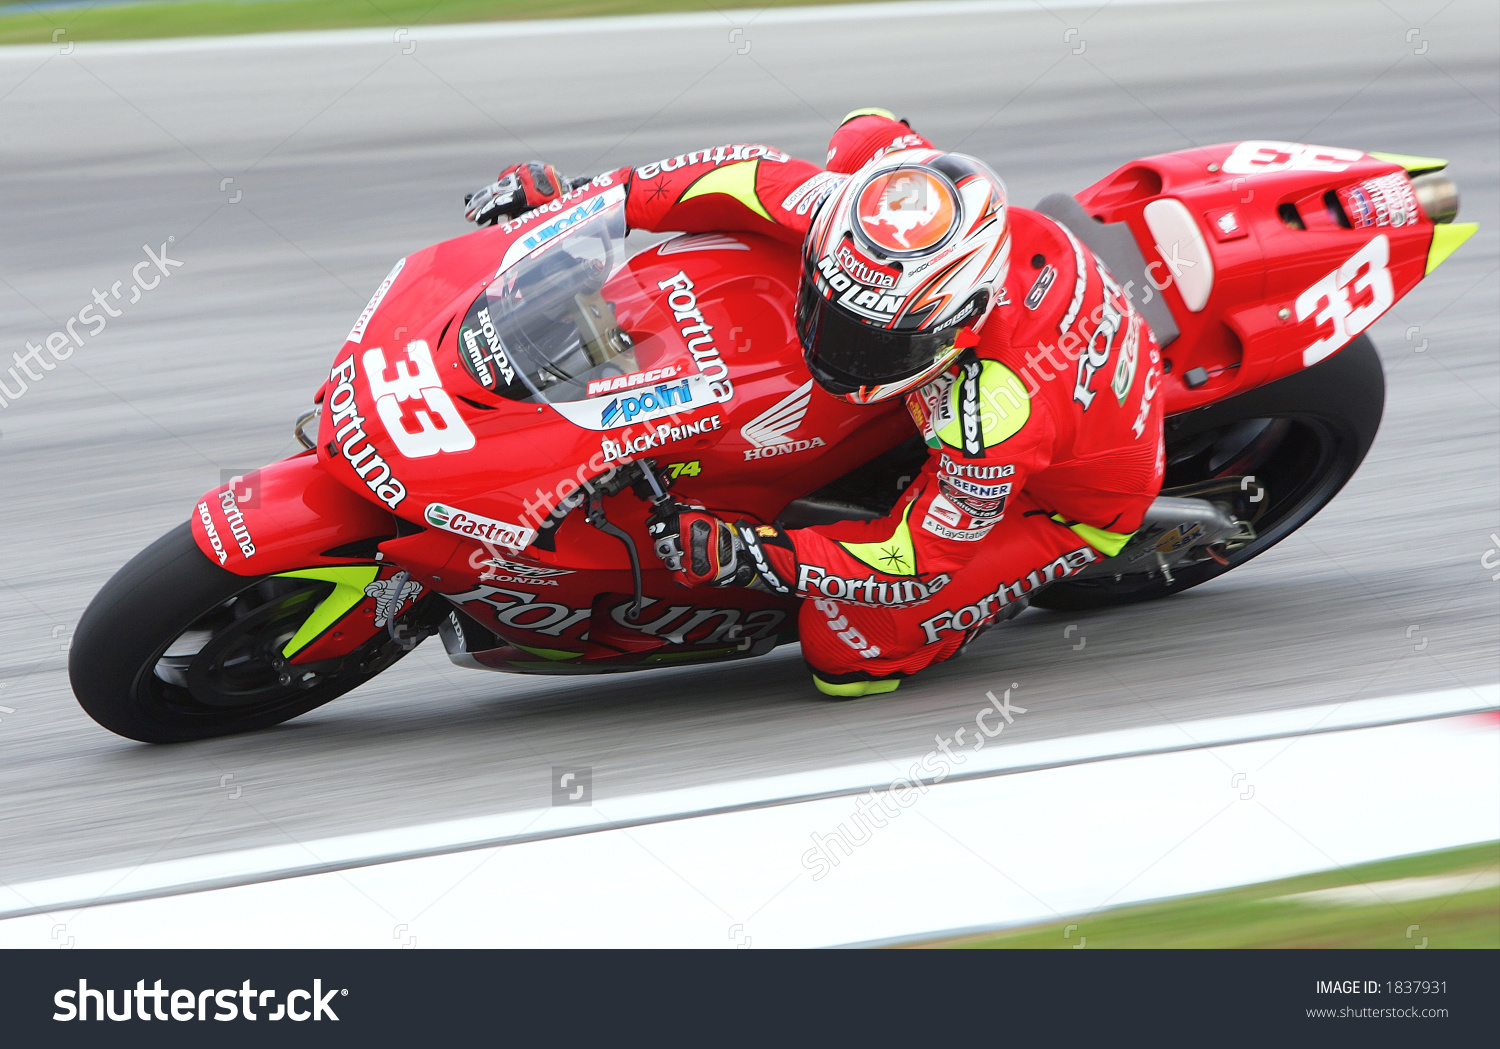 Italian Motogp Rider Marco Melandri Fortuna Stock Photo 1837931.